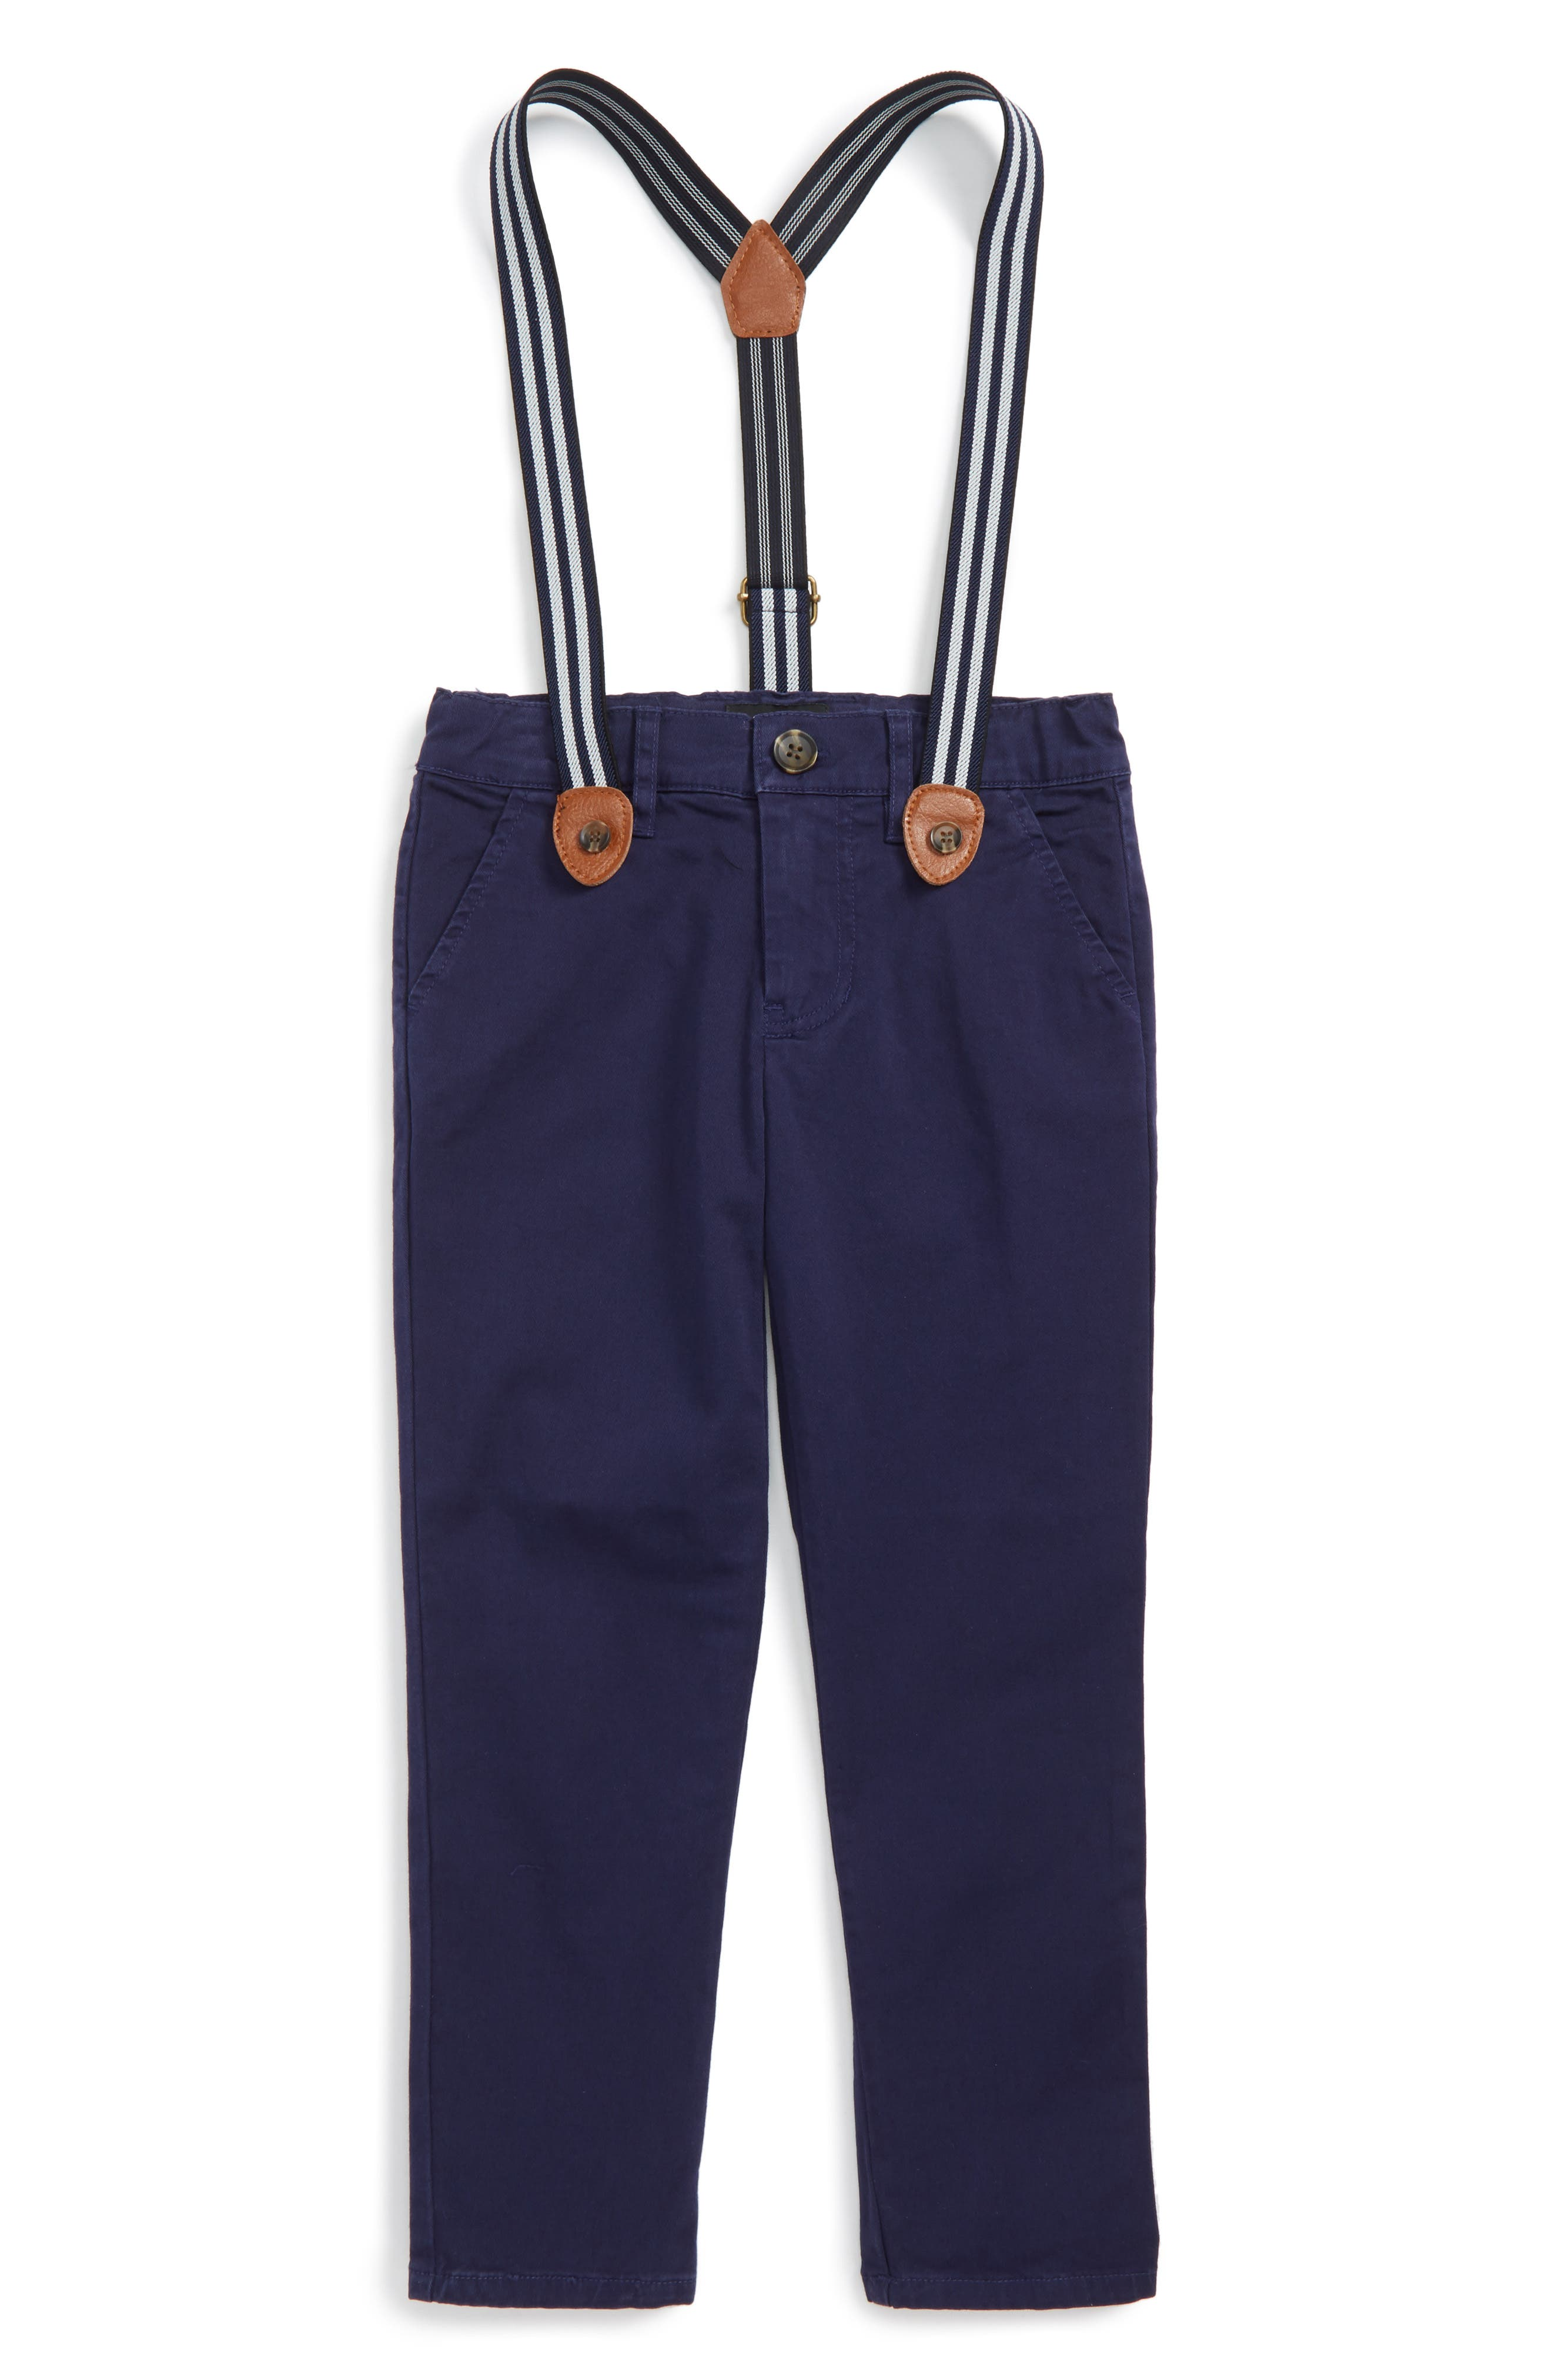 Chinos & Suspenders Set,                             Main thumbnail 1, color,                             409